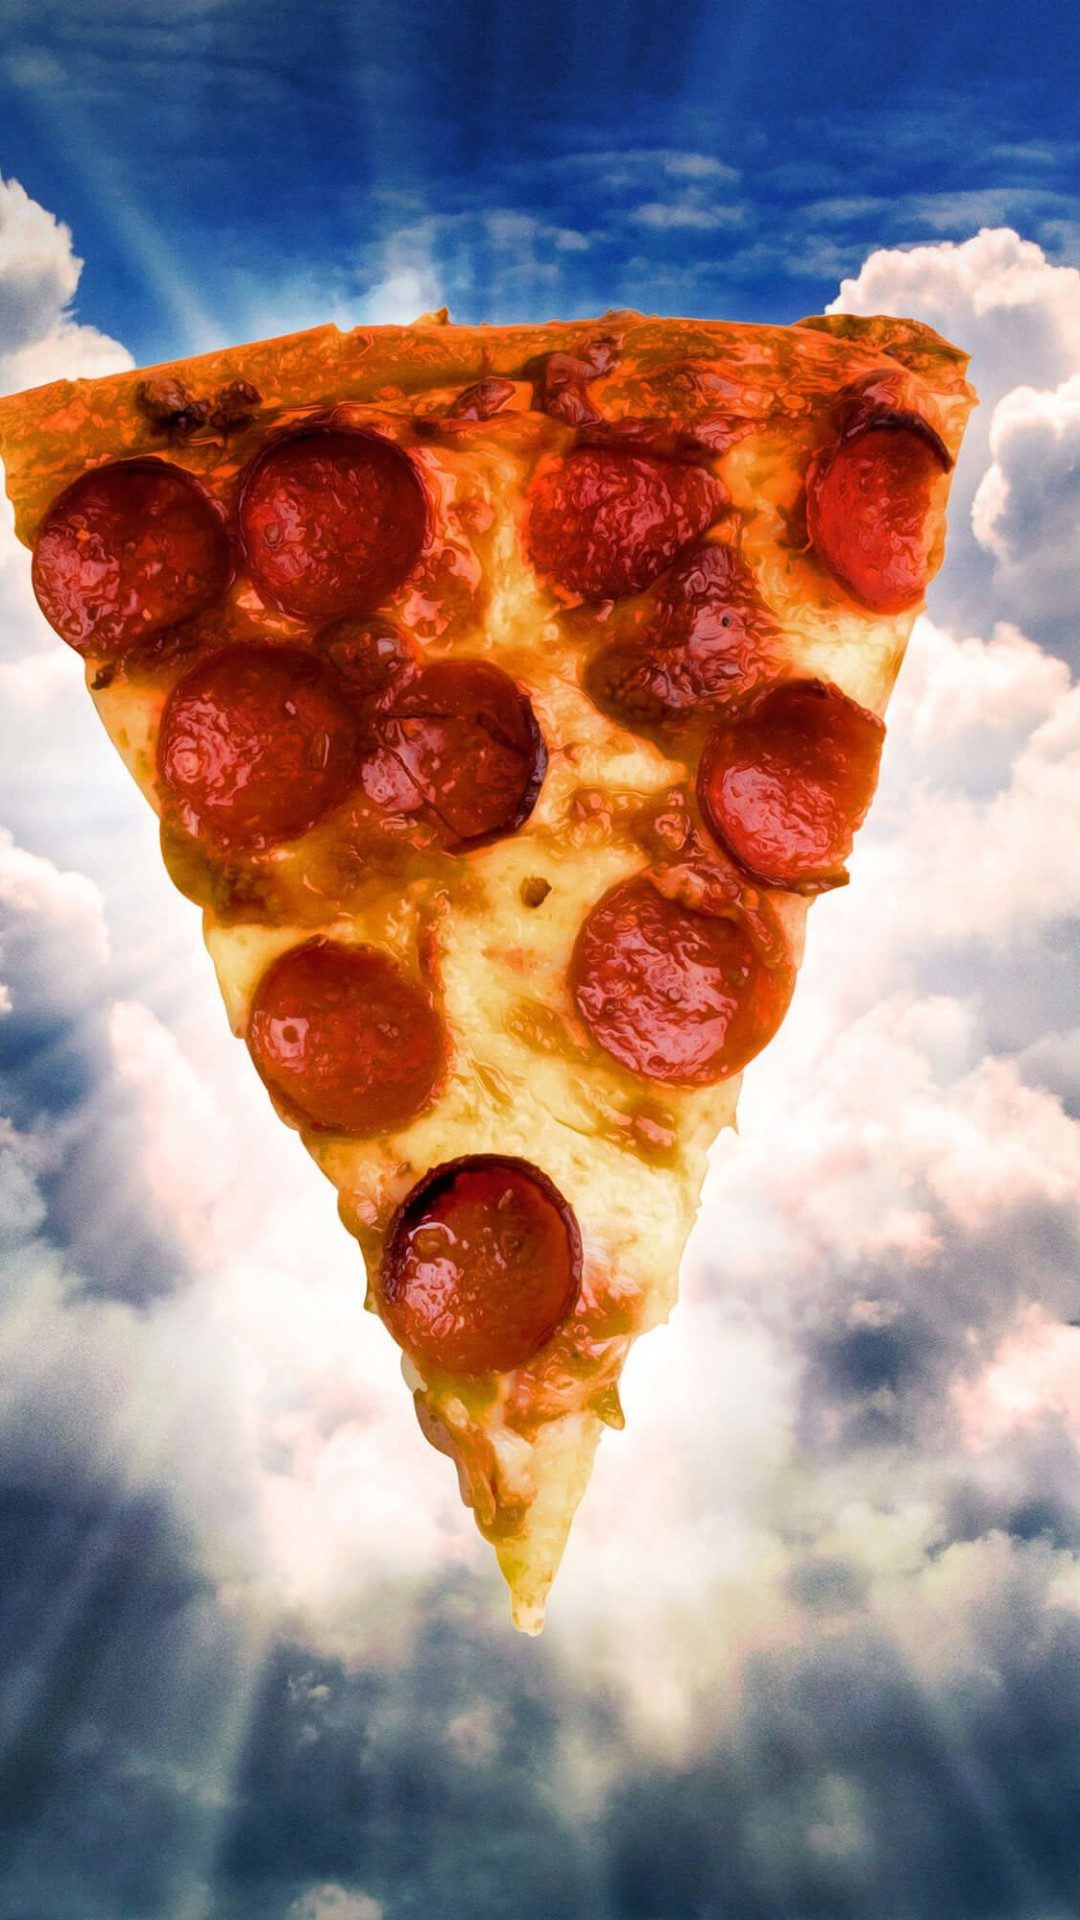 Holy Pizza Wallpaper for SAMSUNG Galaxy Note 3